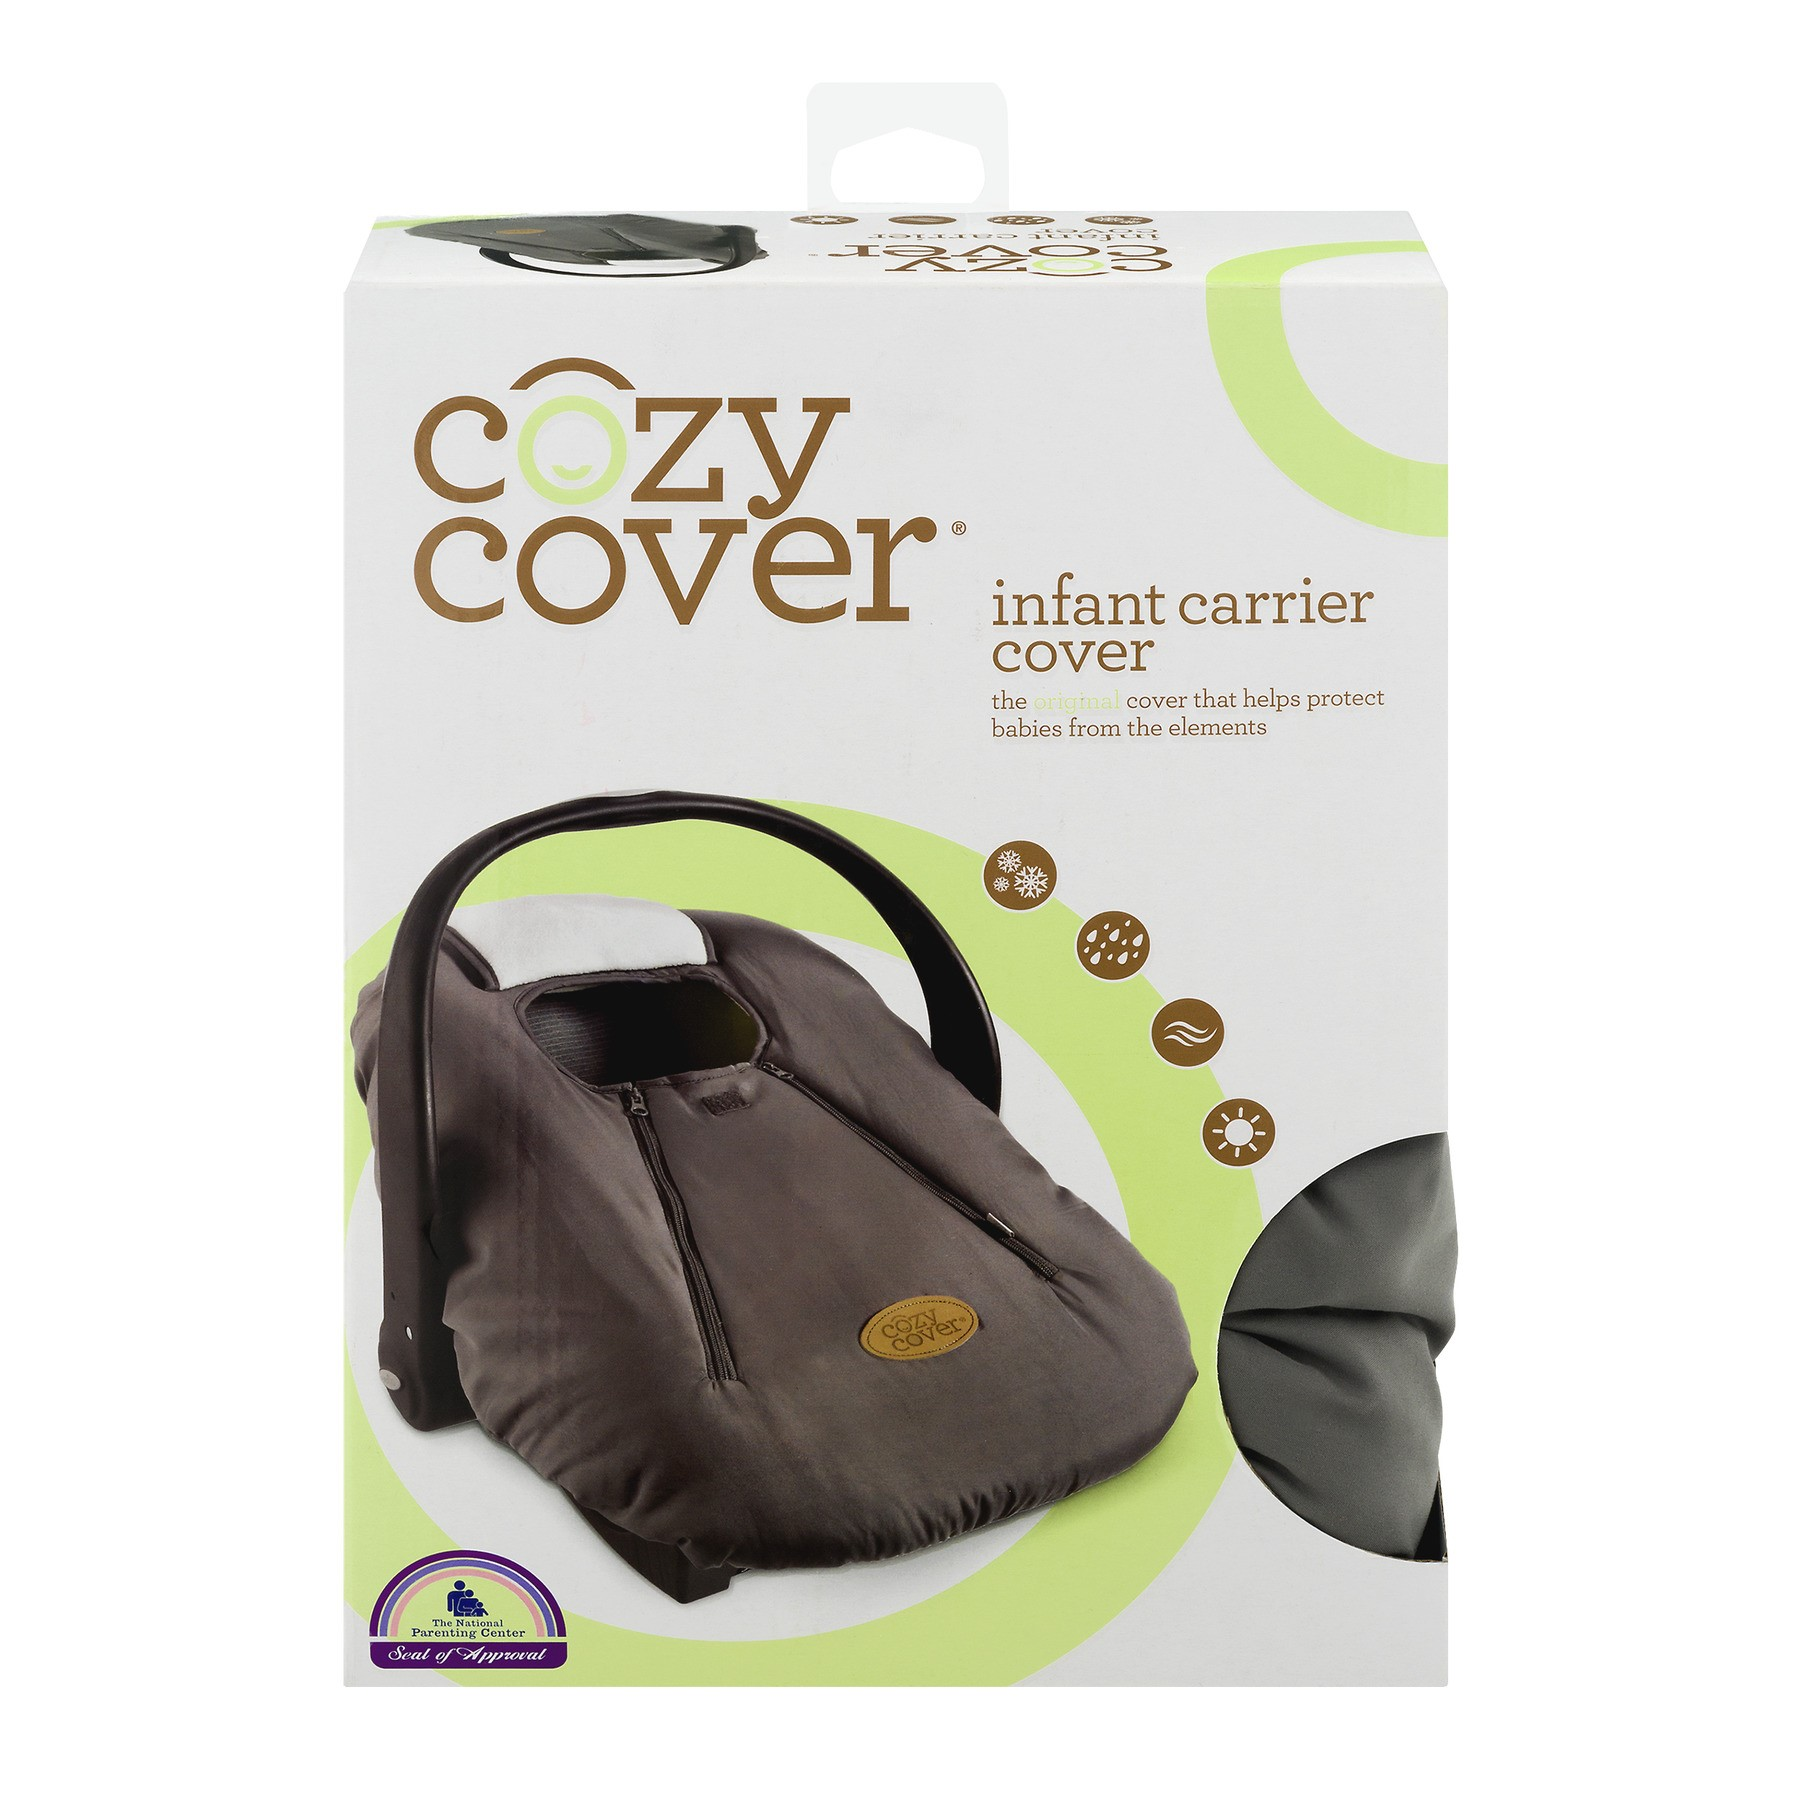 Cozy Cover Infant Carrier Cover, Gray